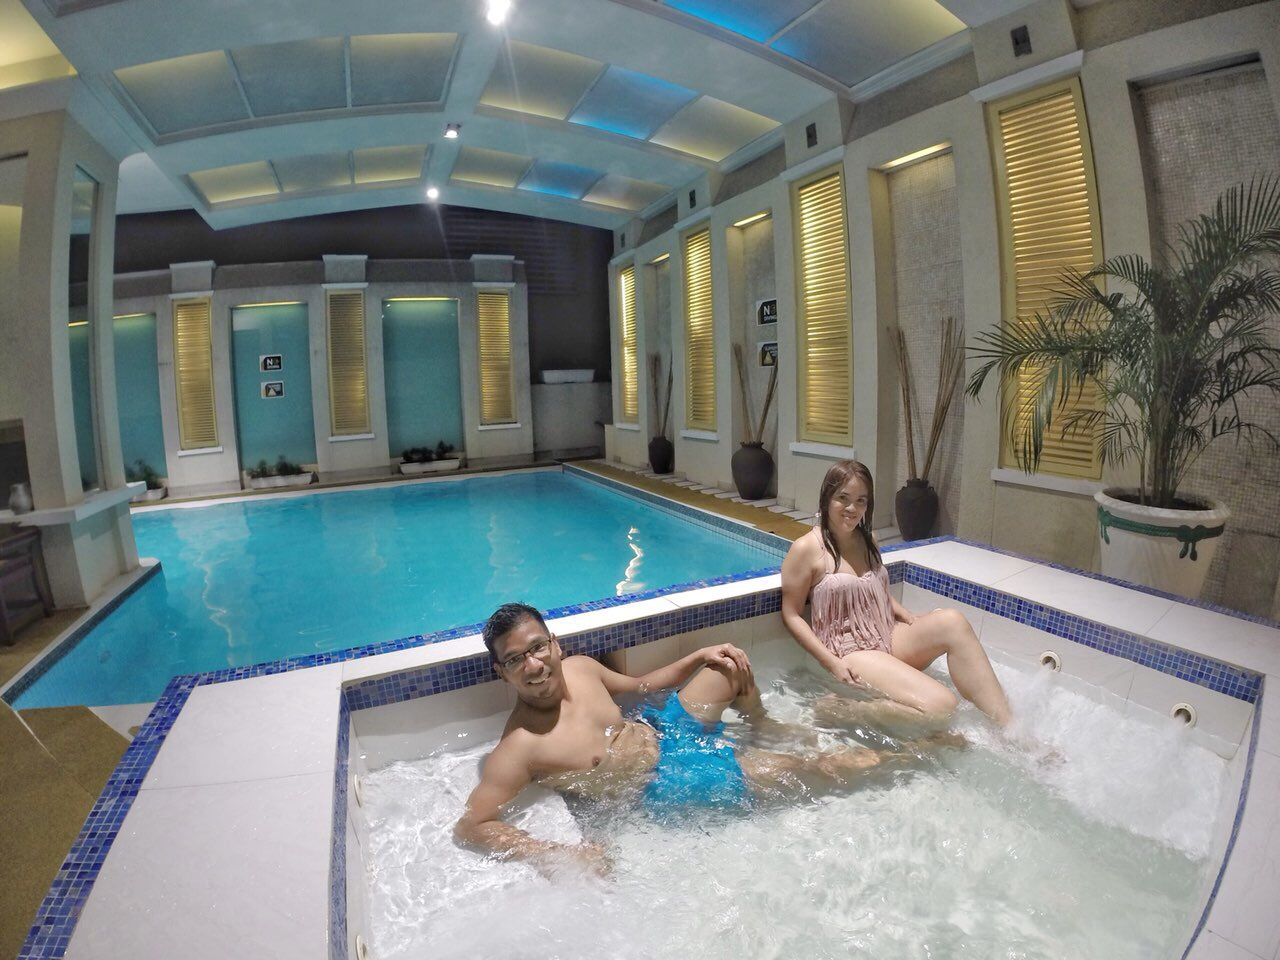 a private pool and jacuzzi , my perfect vision of my Valentine plans at the Discovery Suites.